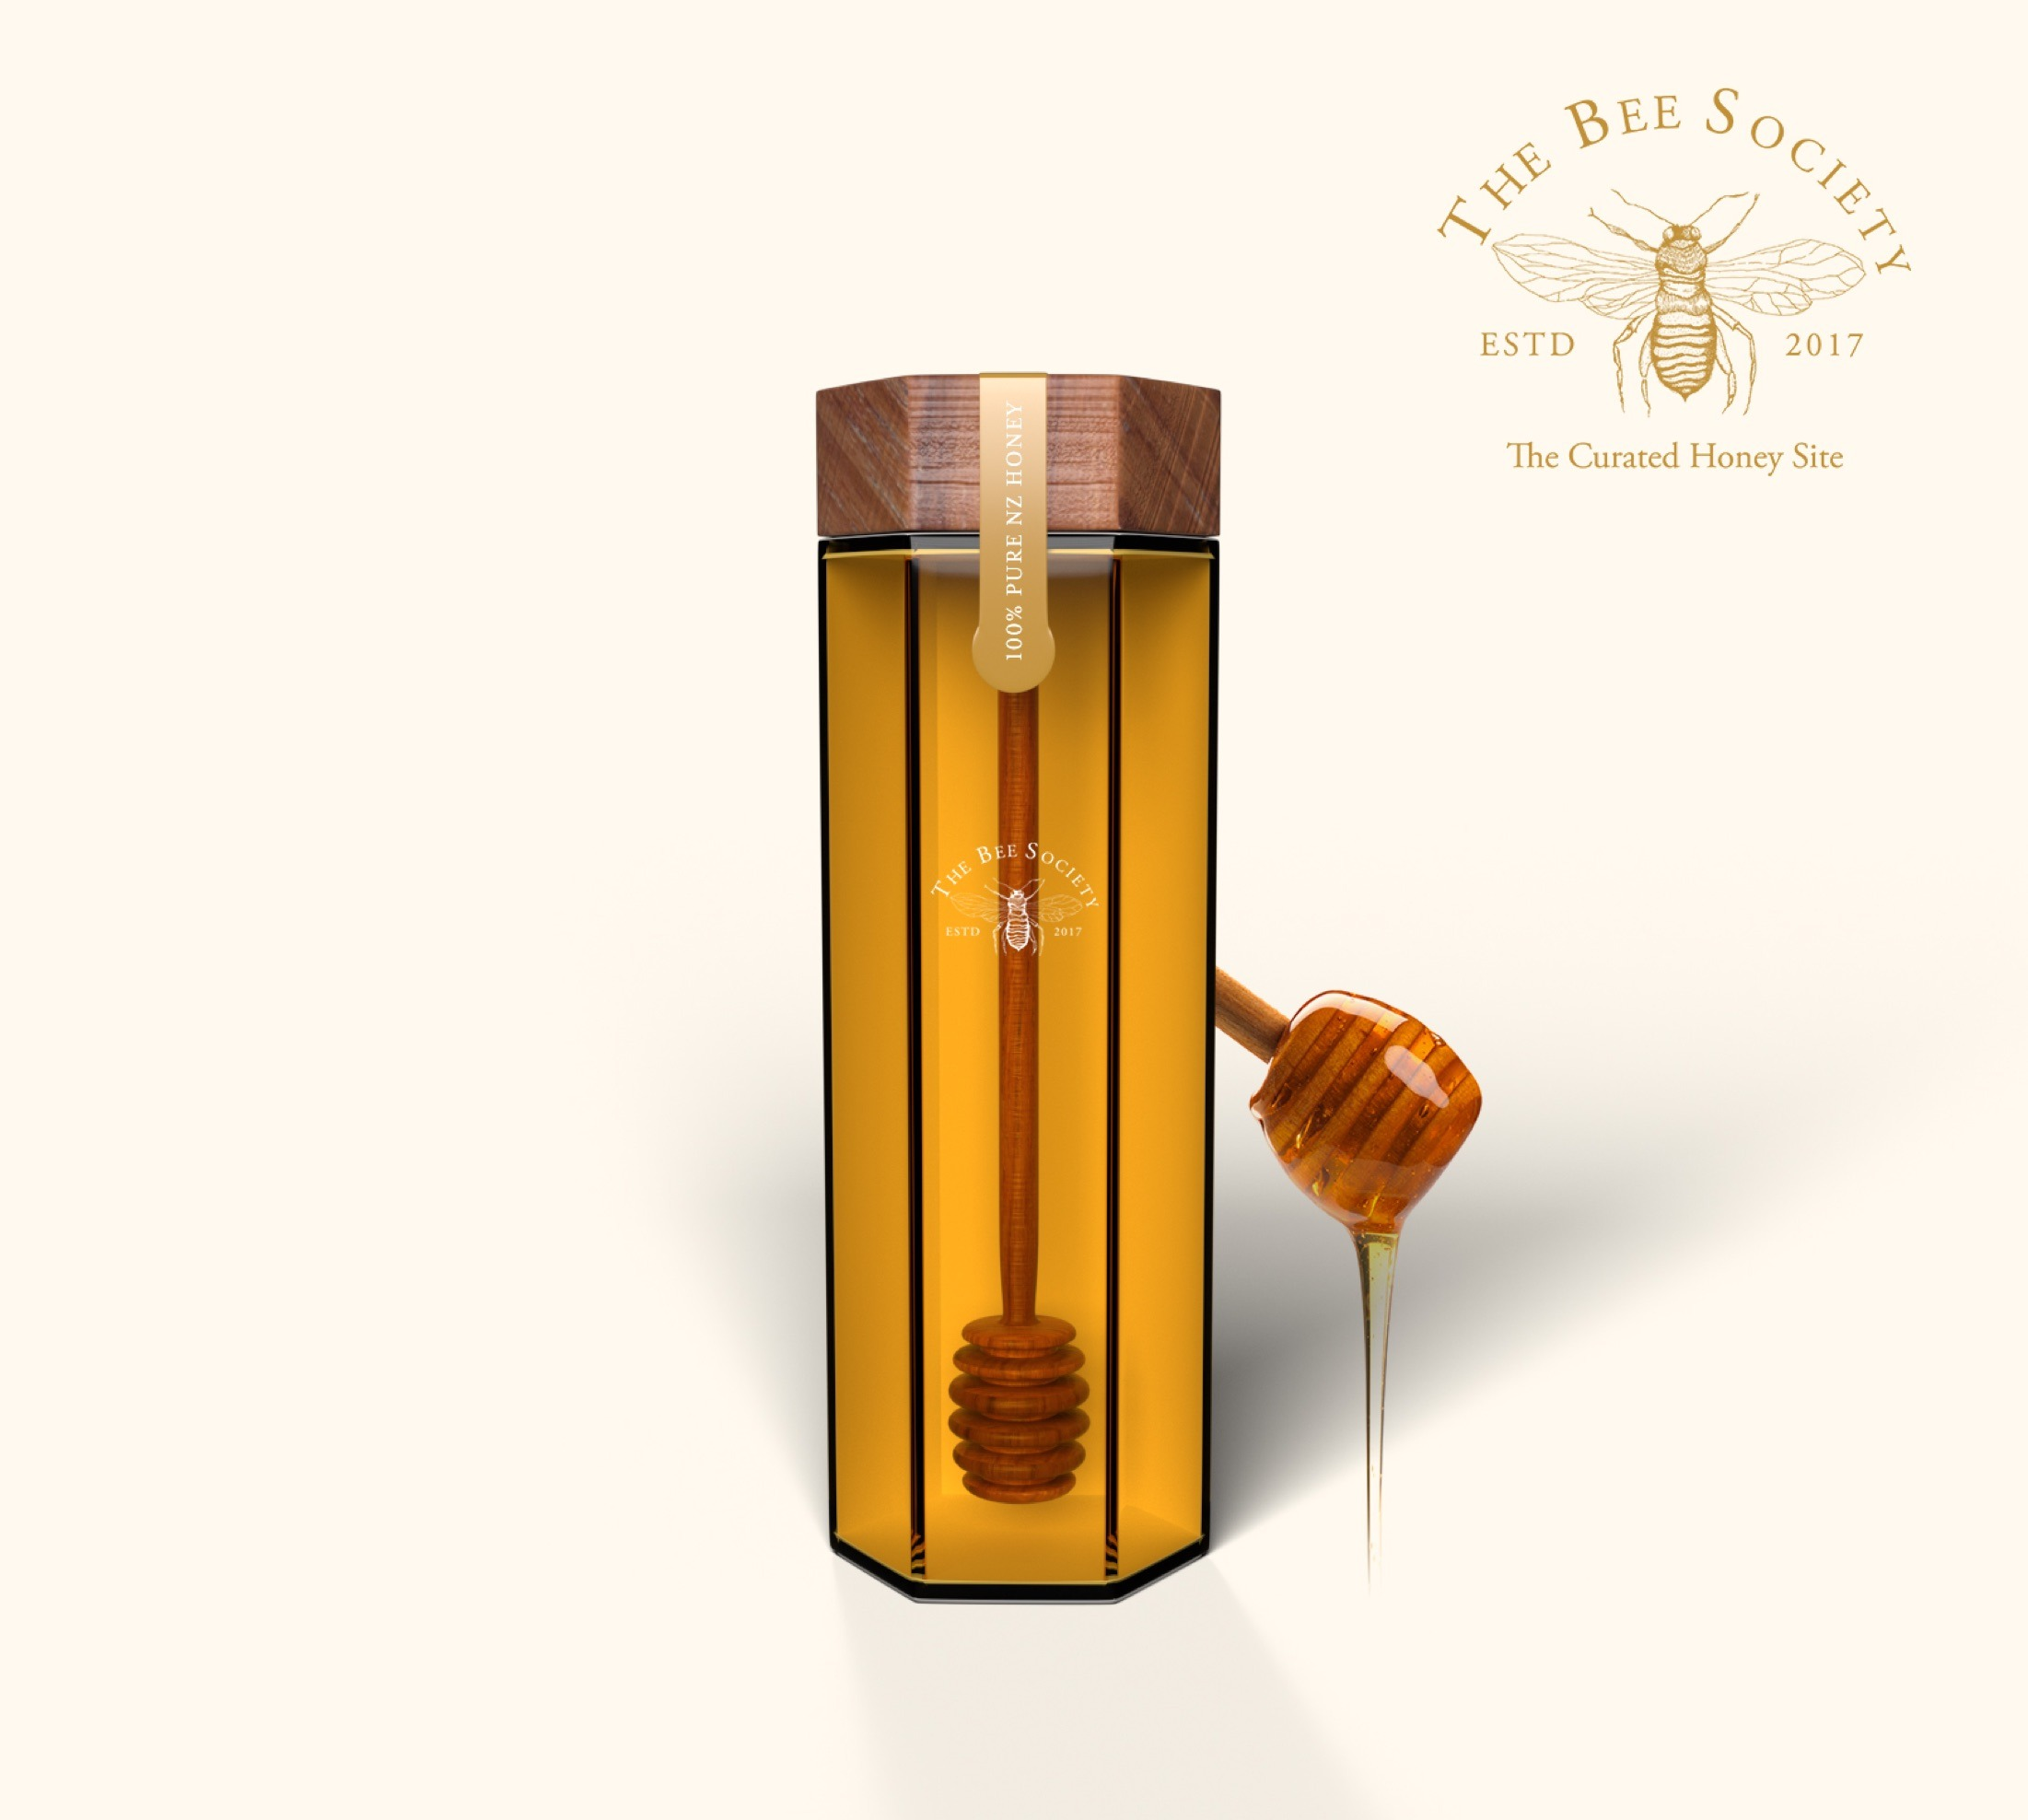 Jar Concept One - Bee Society